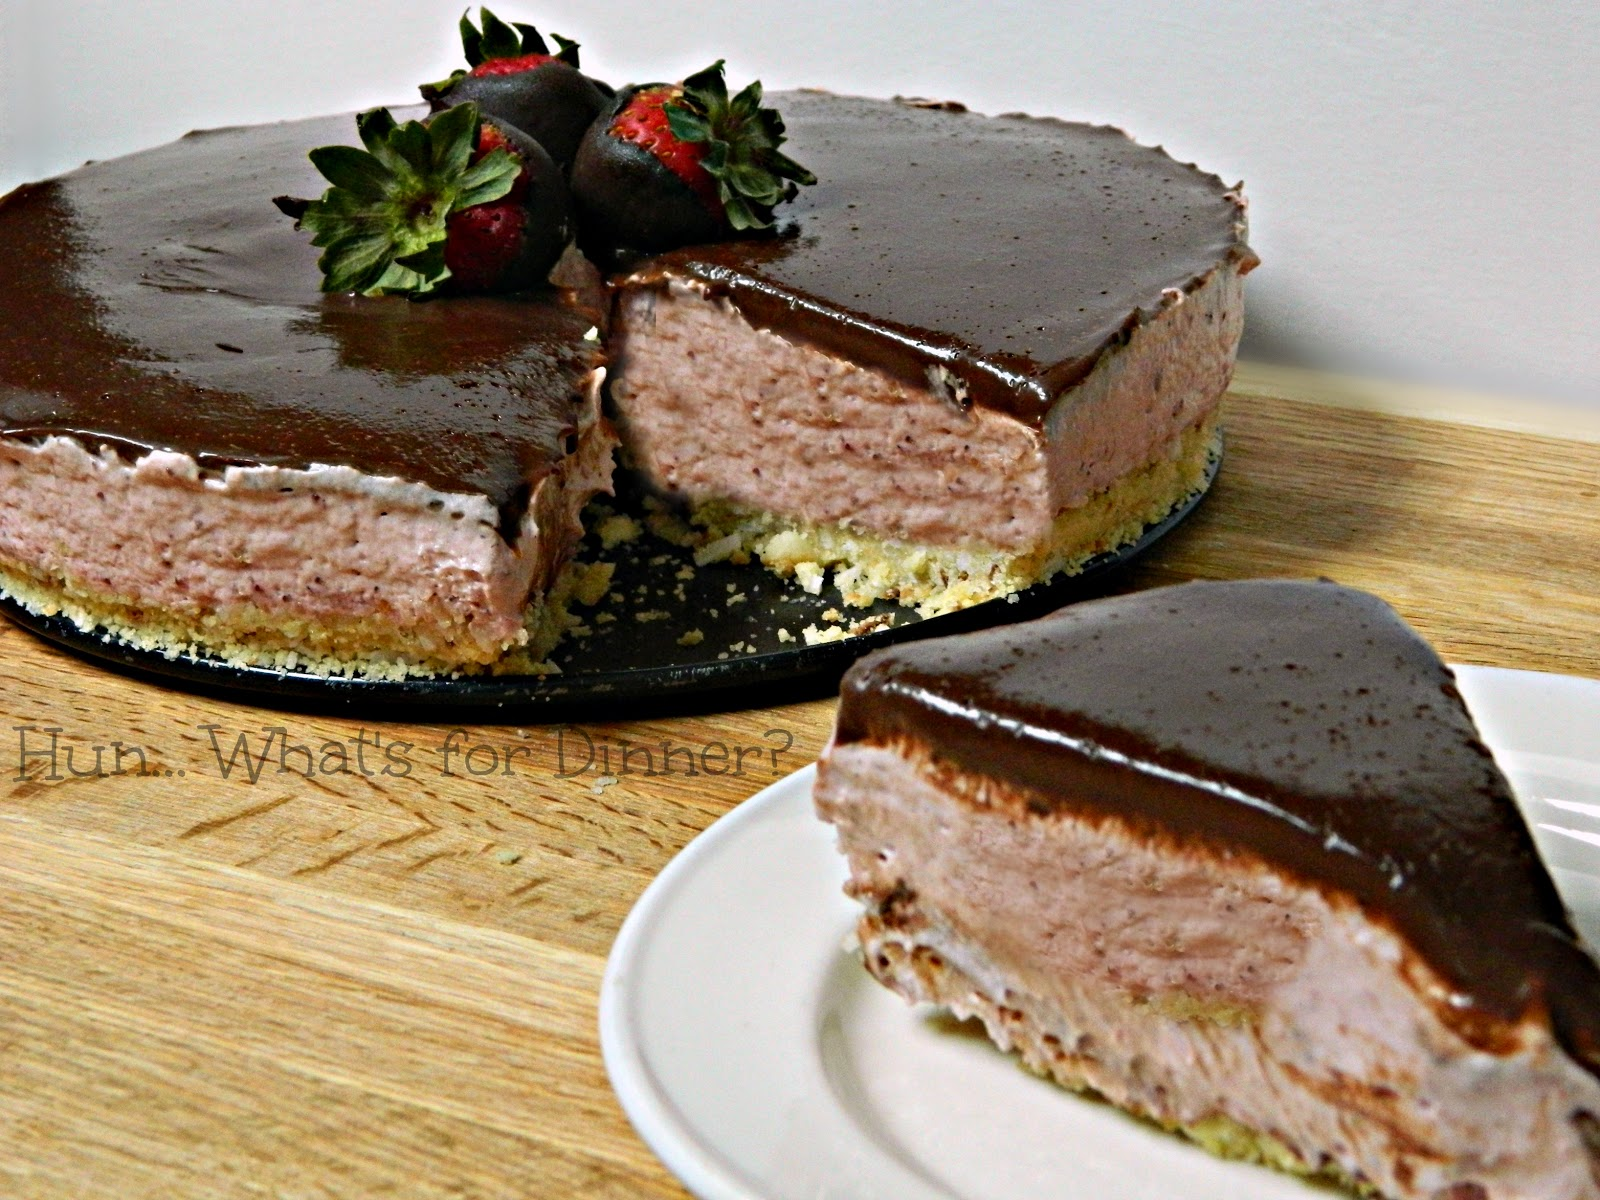 ... What's for Dinner?: No-Bake Chocolate Covered Strawberry Cheesecake